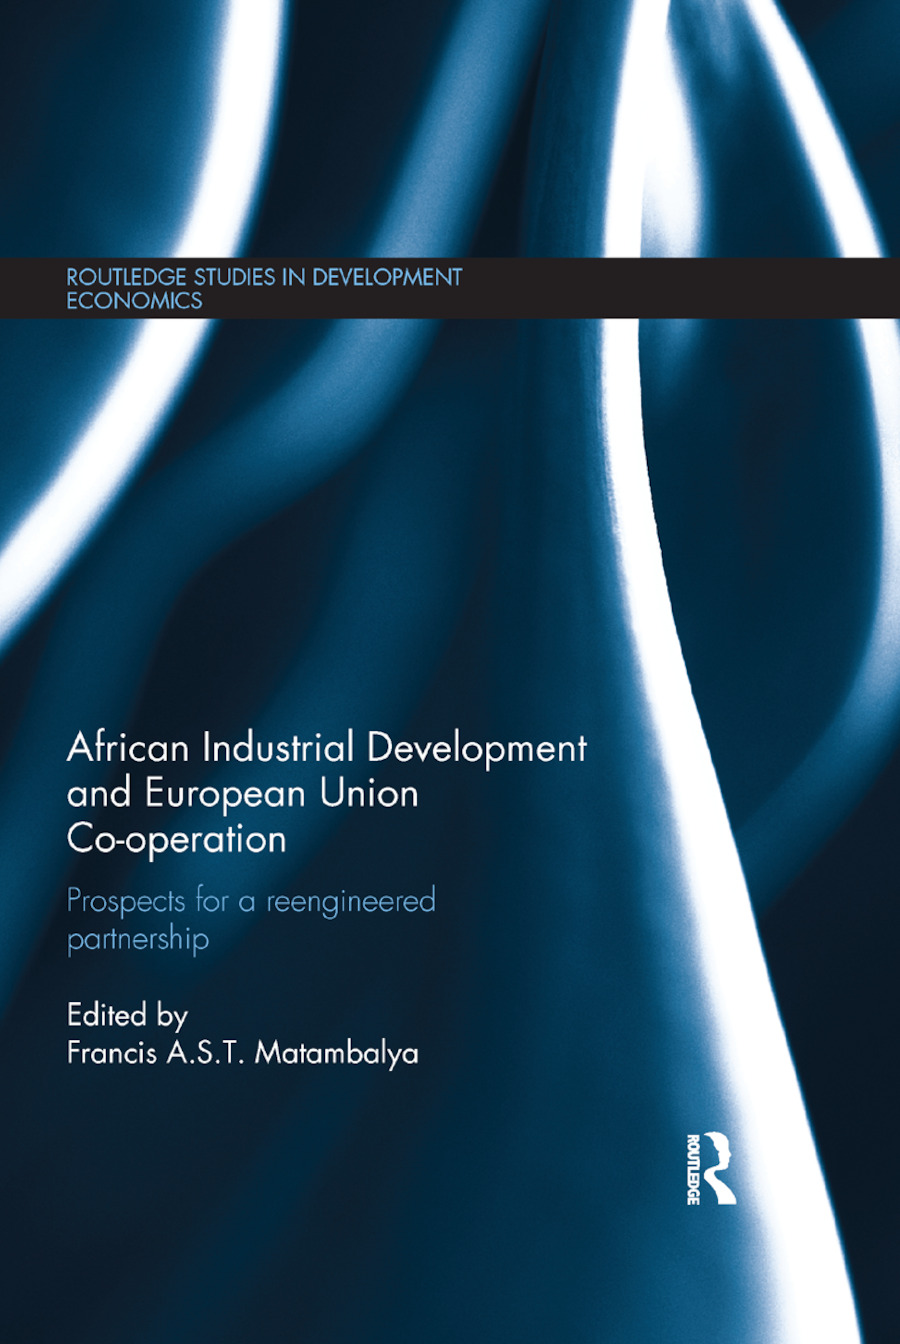 African Industrial Development and European Union Co-operation: Prospects for a reengineered partnership book cover